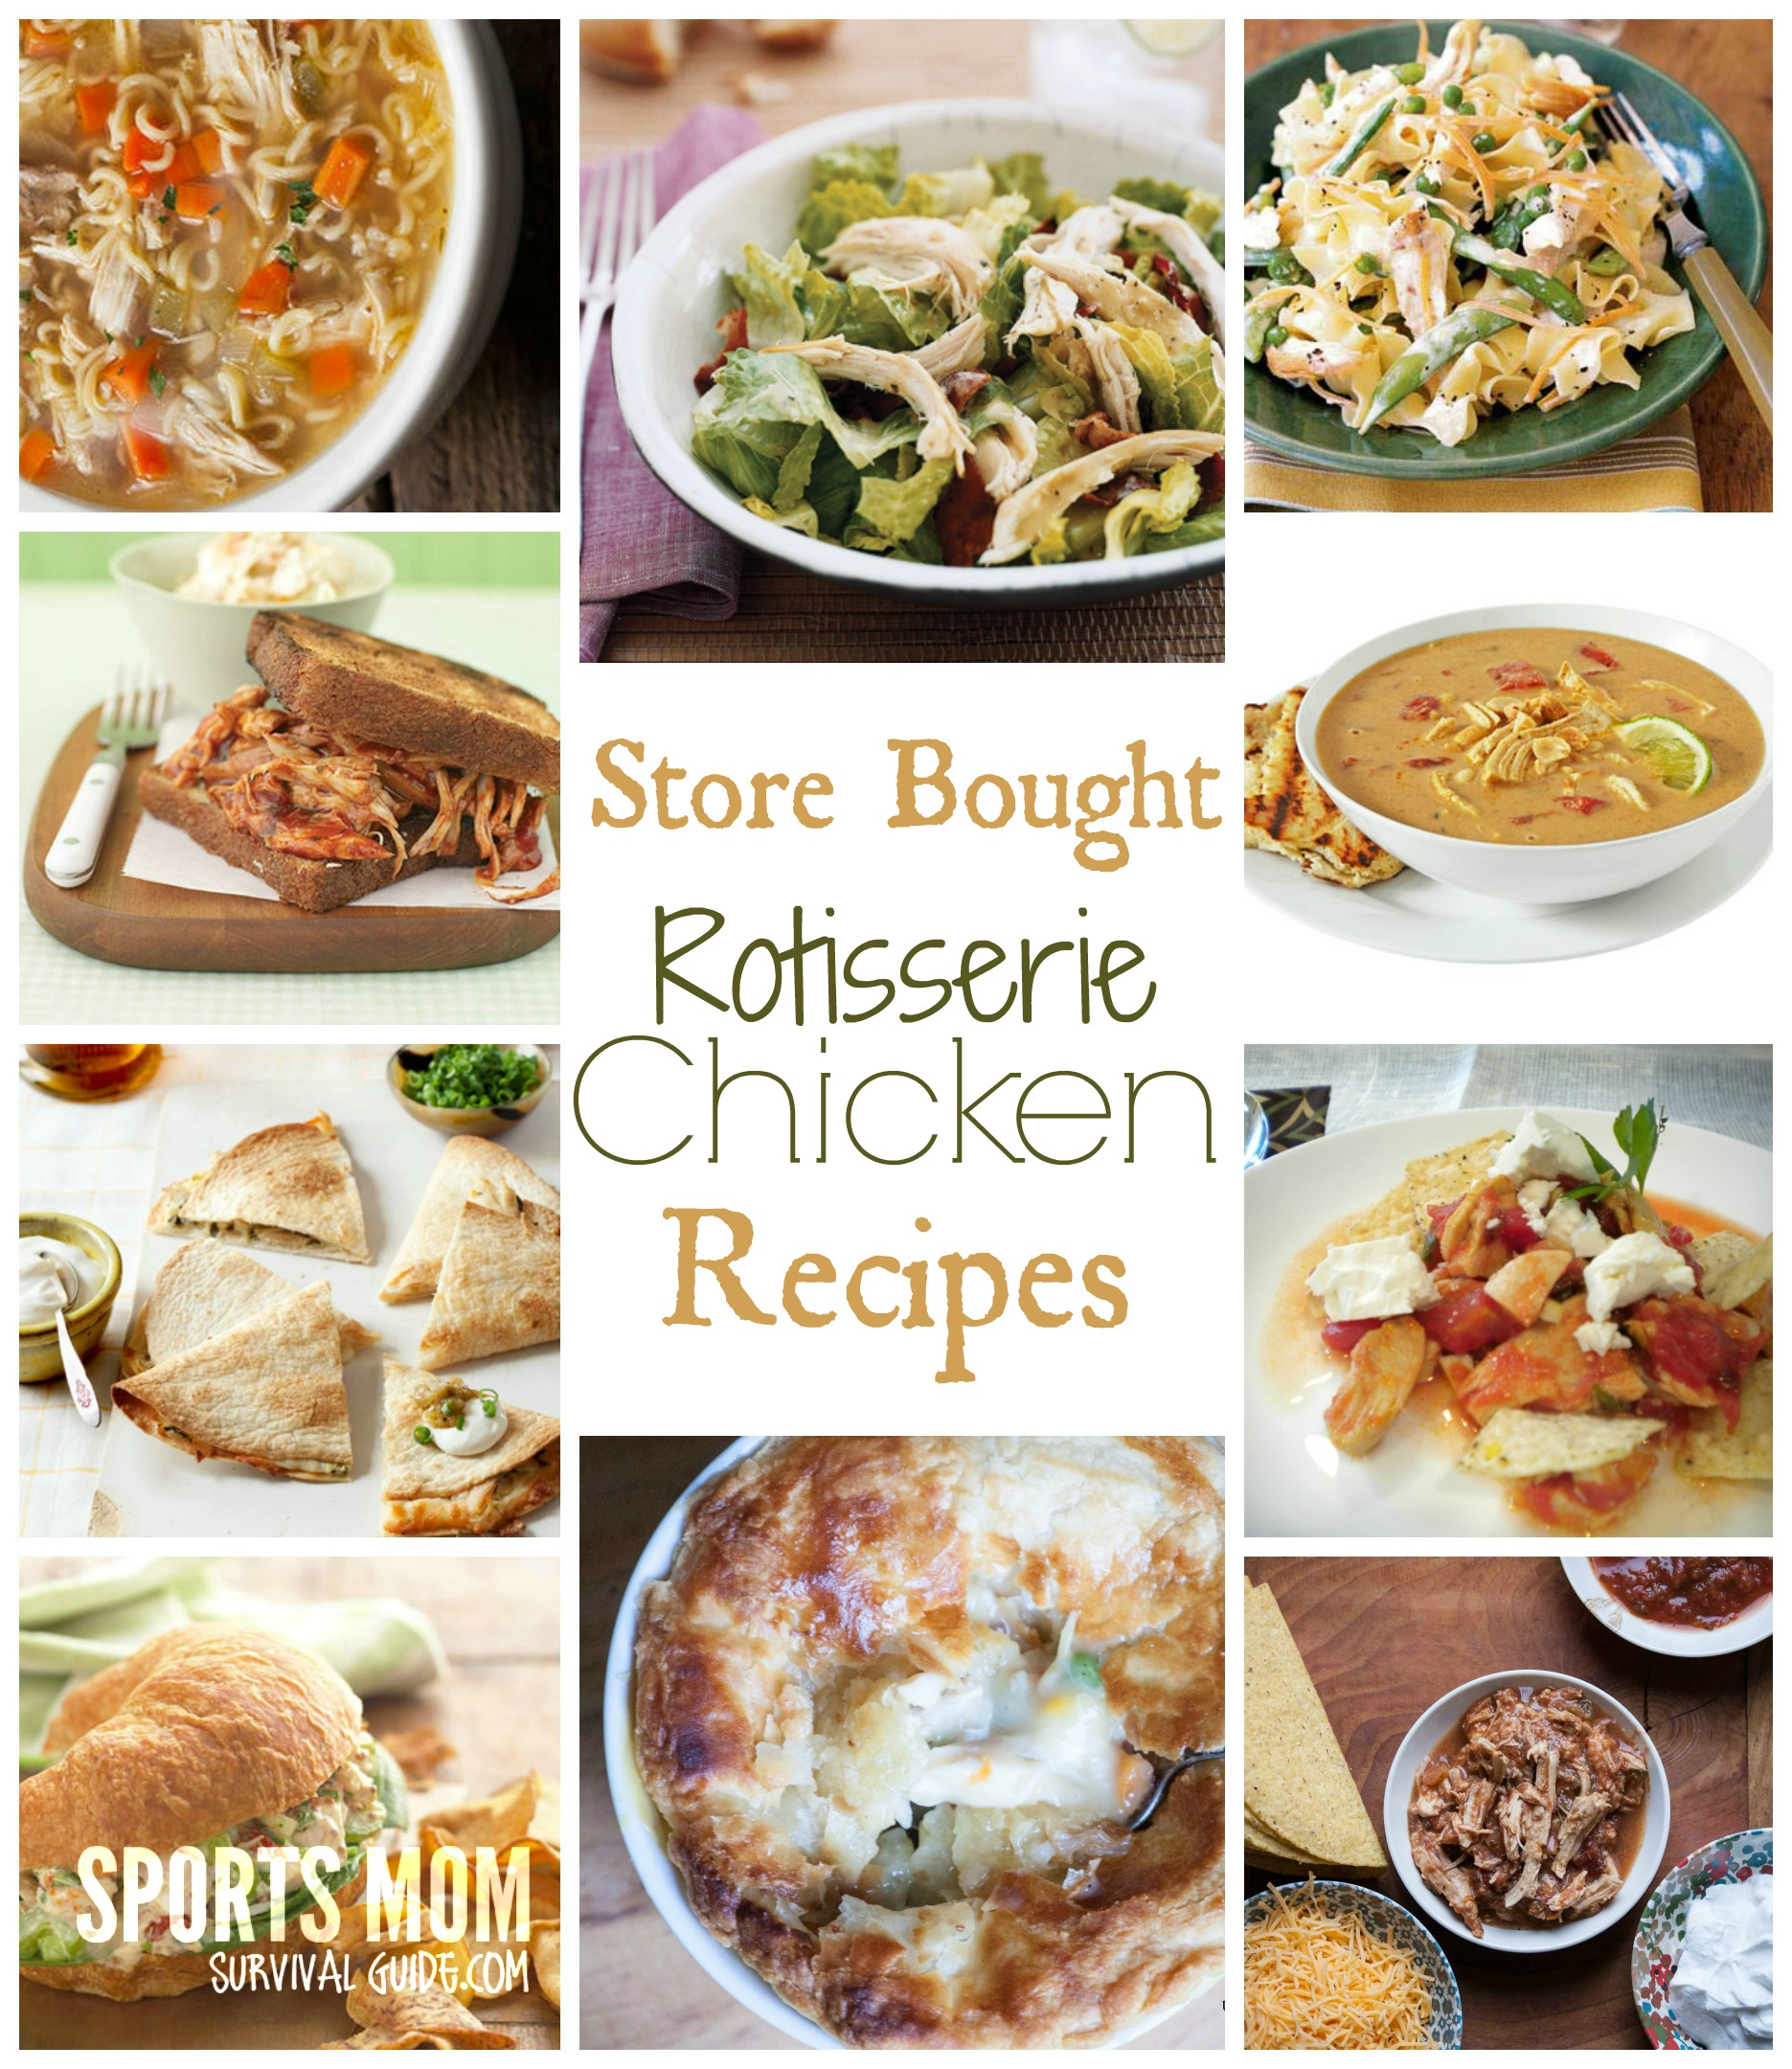 Store Bought Rotisserie Chicken Recipes For Quick Meals